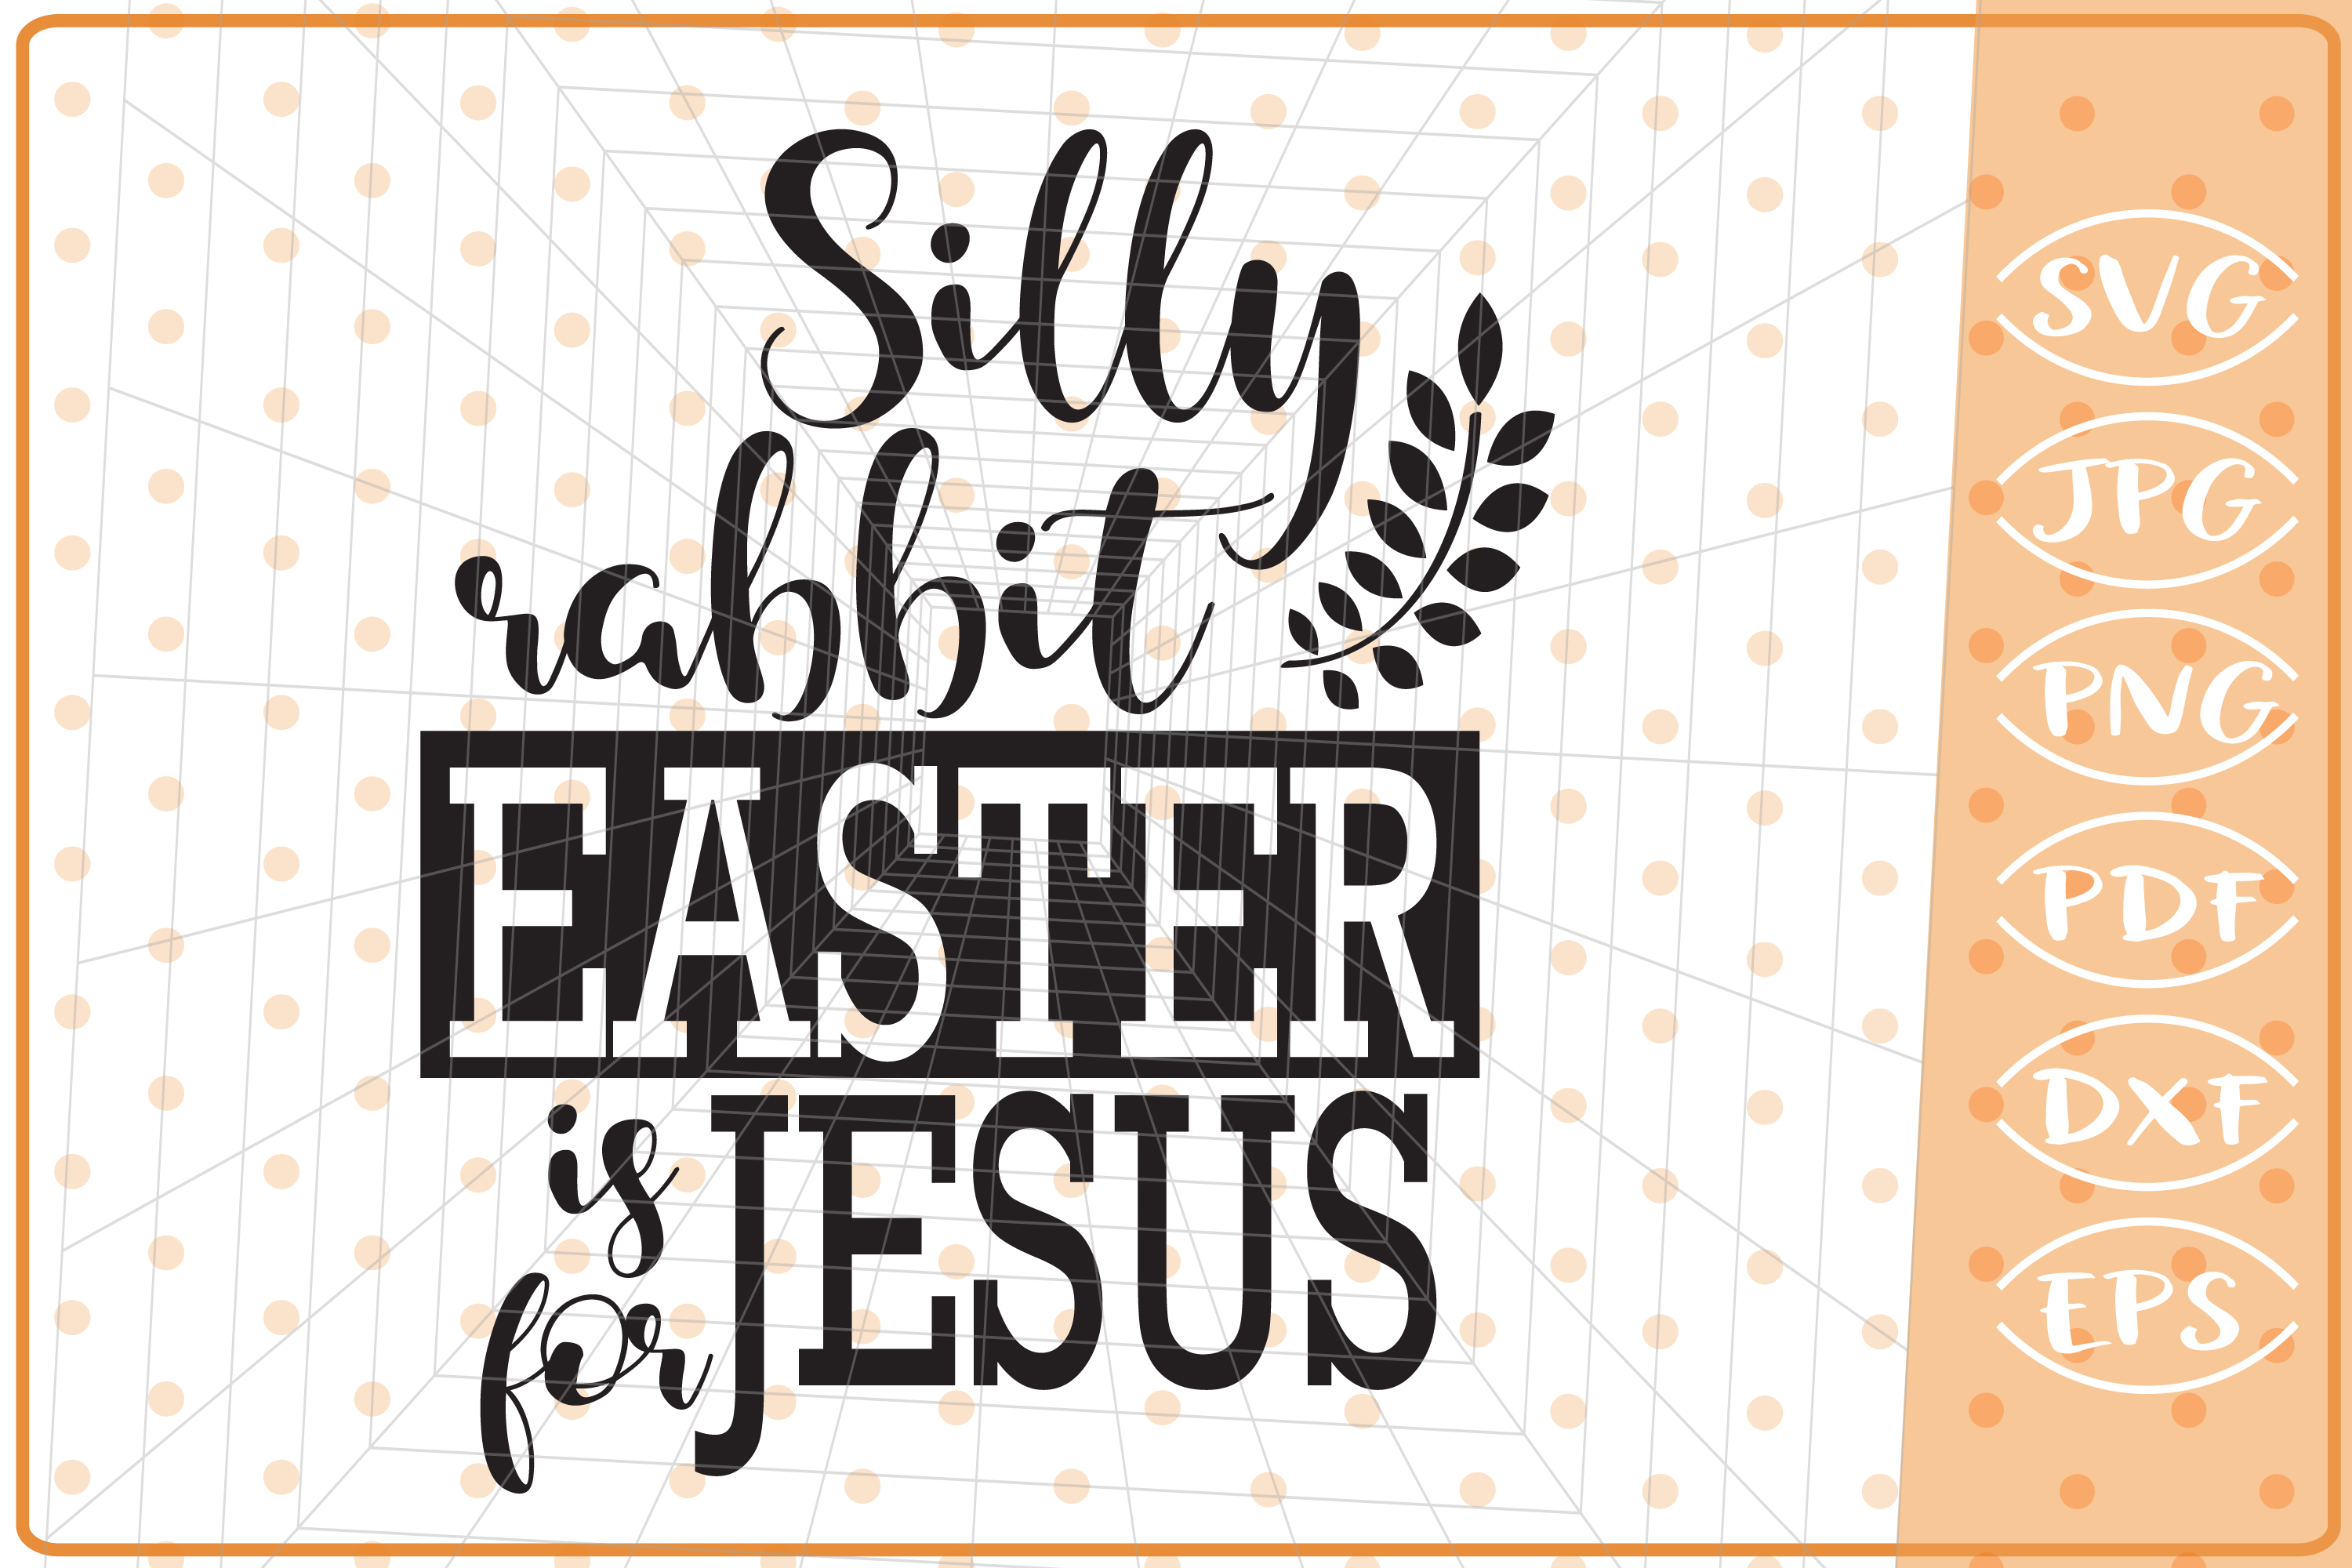 Silly Rabbit Easter Is For Jesus, Cutting Files, Easter SVG example image 1